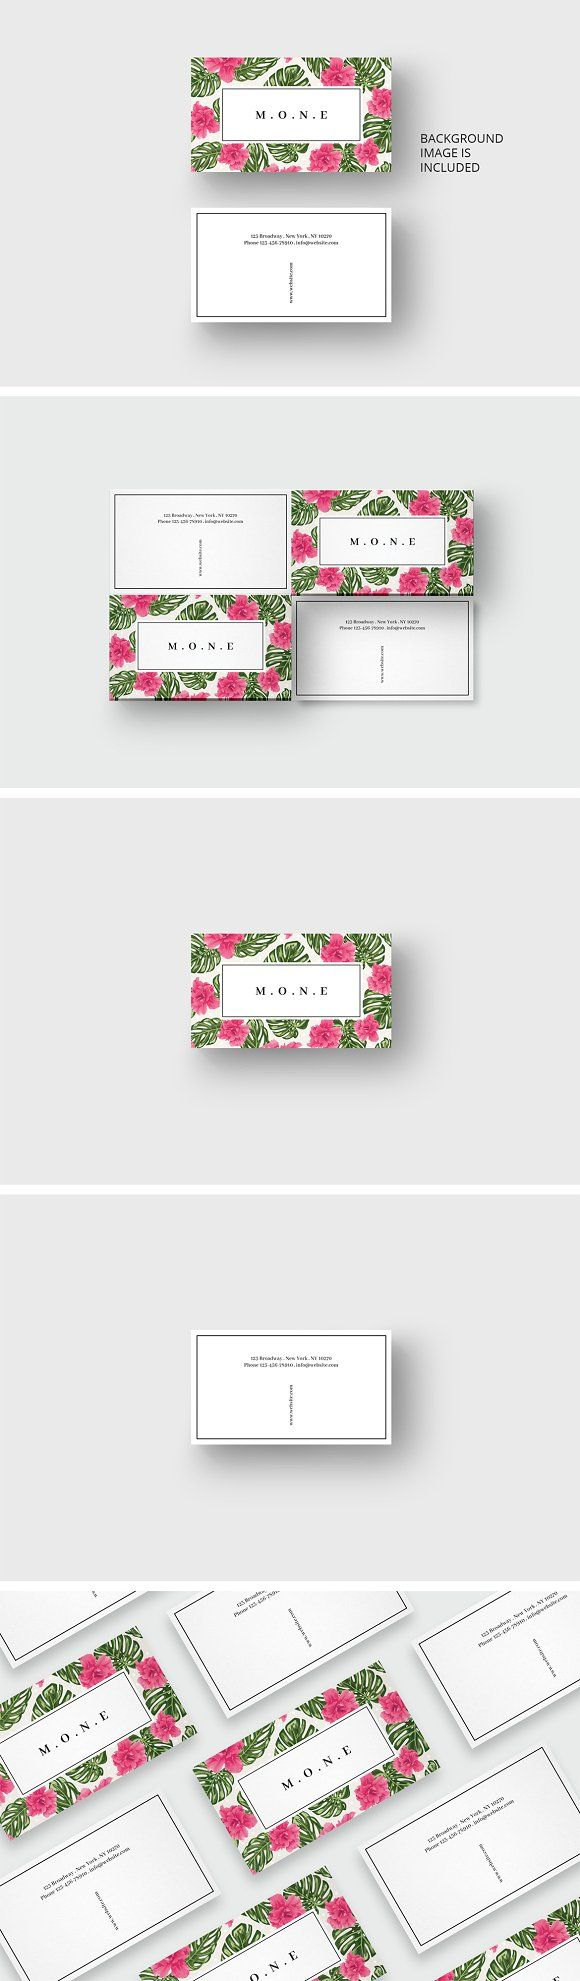 Pink flowers business card template by AgataCreate on @creativemarket